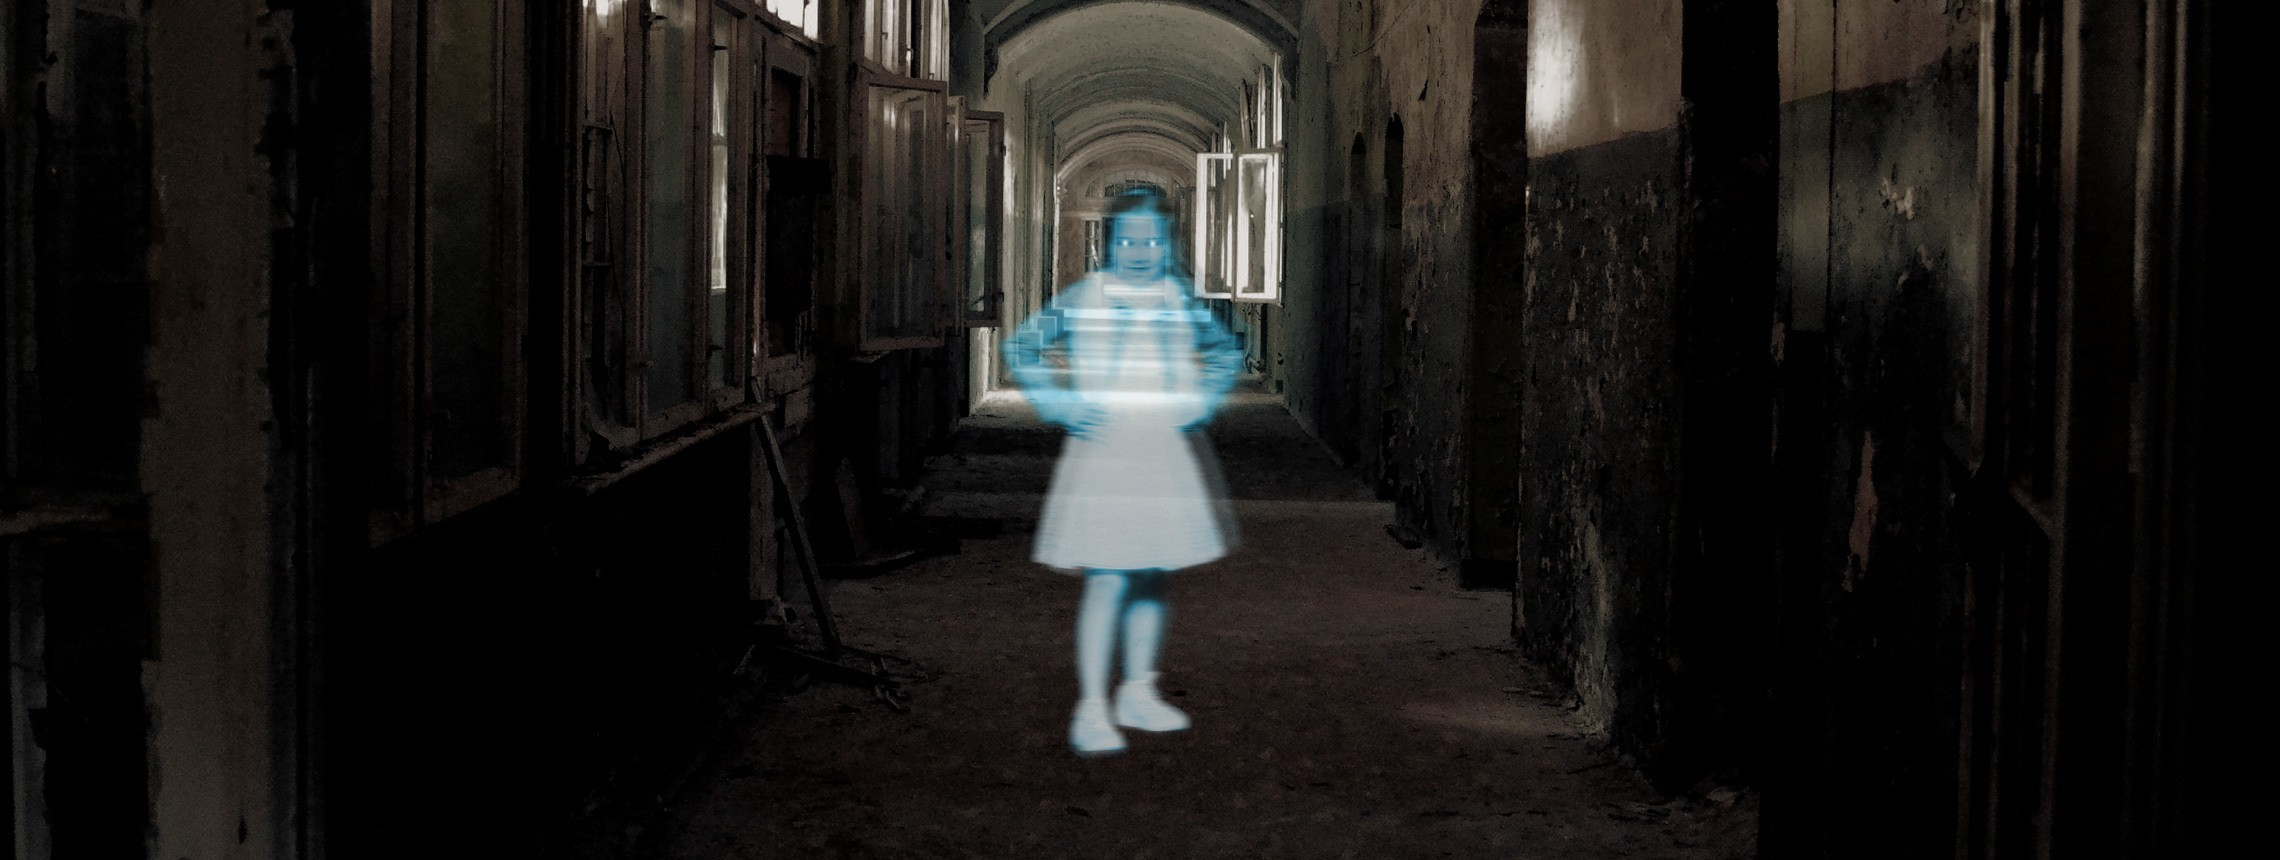 Add a Realistic Ghost Into any Image